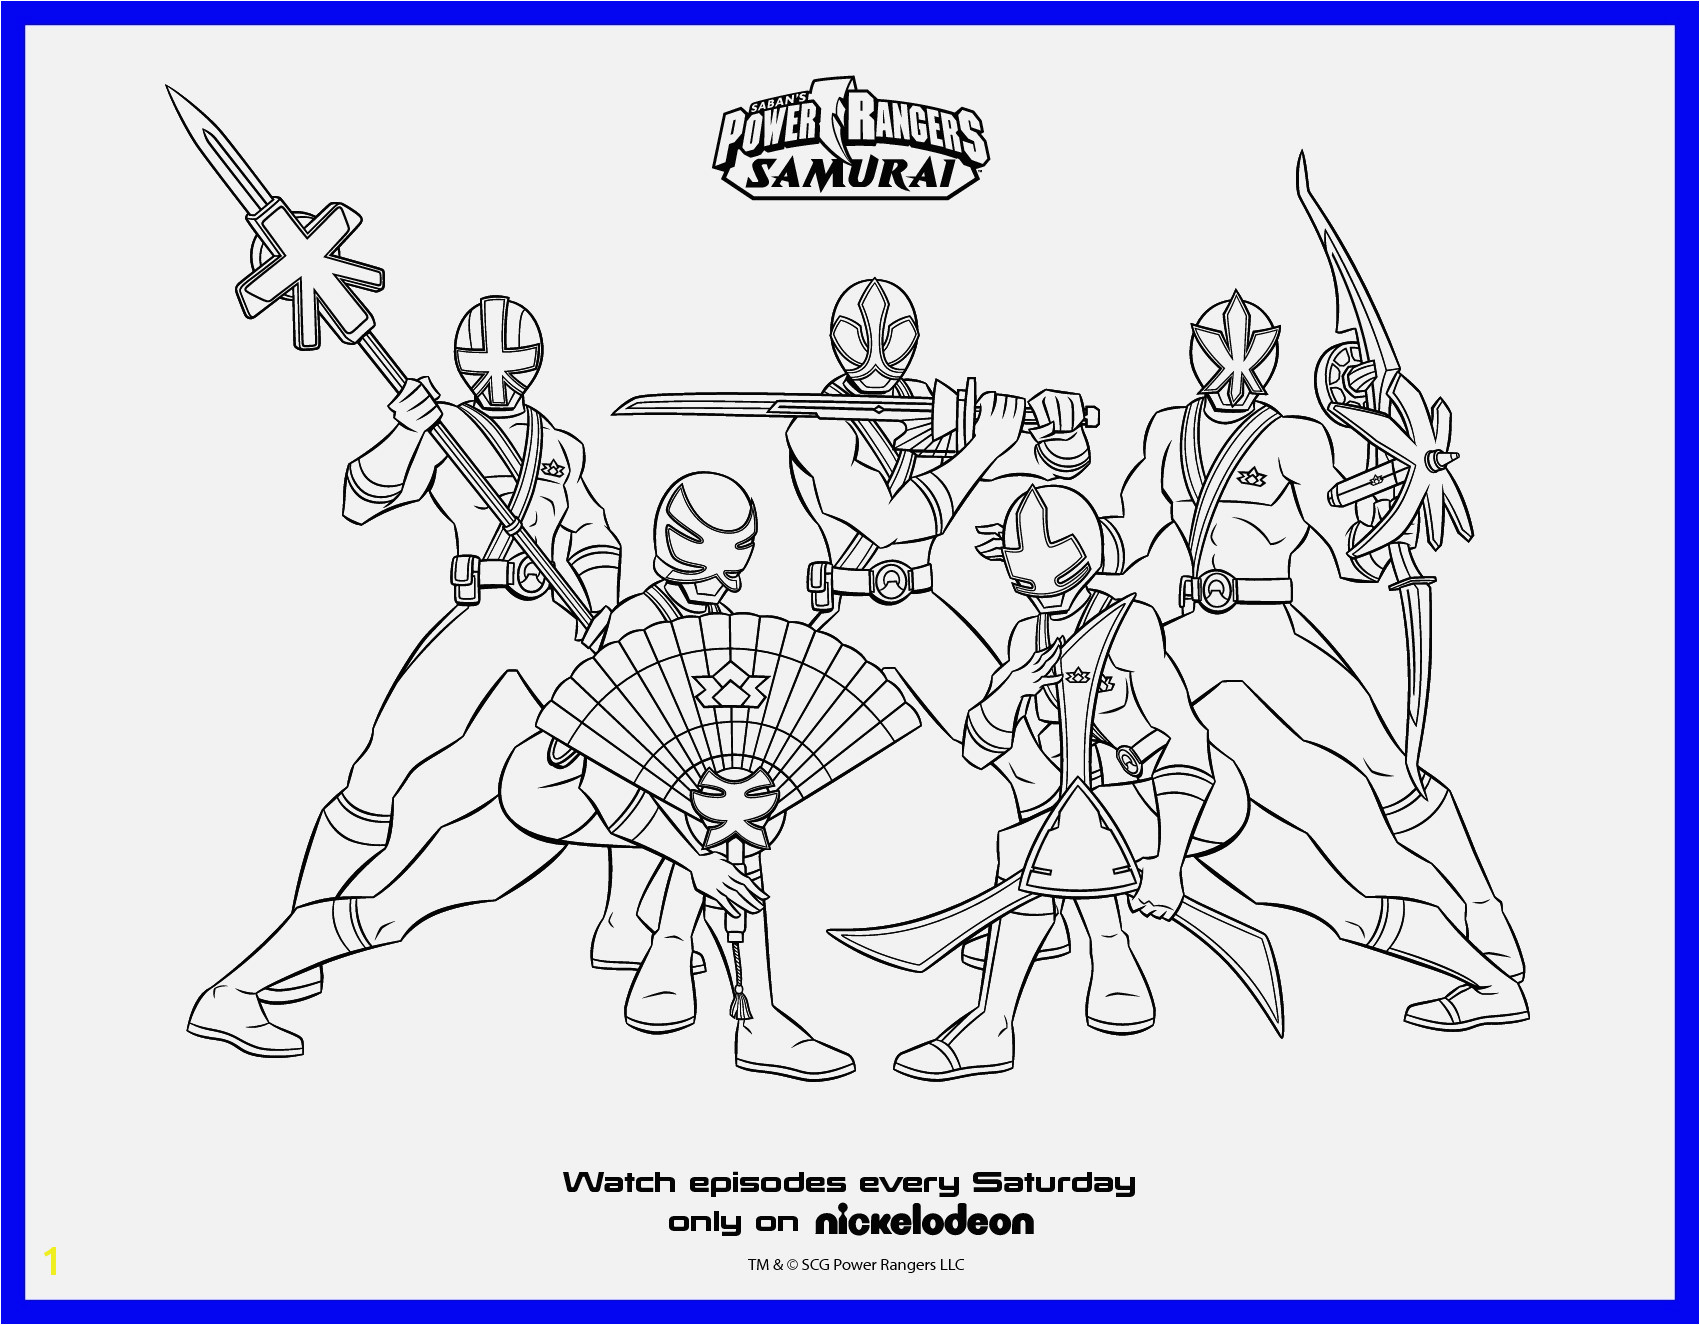 Coloring Pages · Power Rangers Coloring Book Amazing Advantages Kick Power Rangers Coloring Page Polar Bear Activity Sheets Coloring